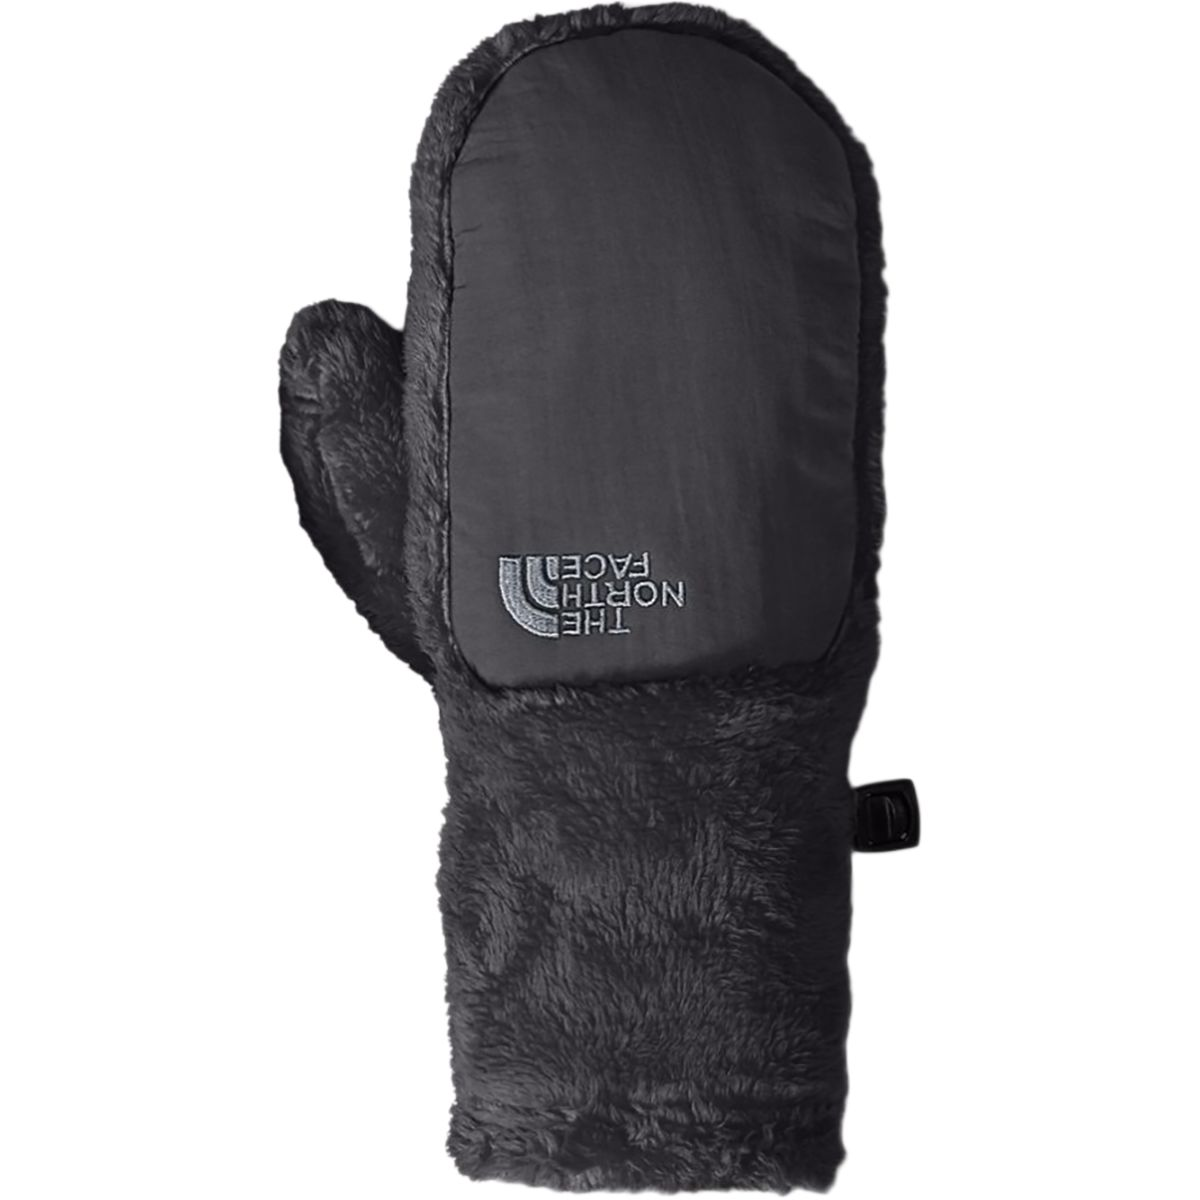 The North Face Denali Thermal Mitten - Girls